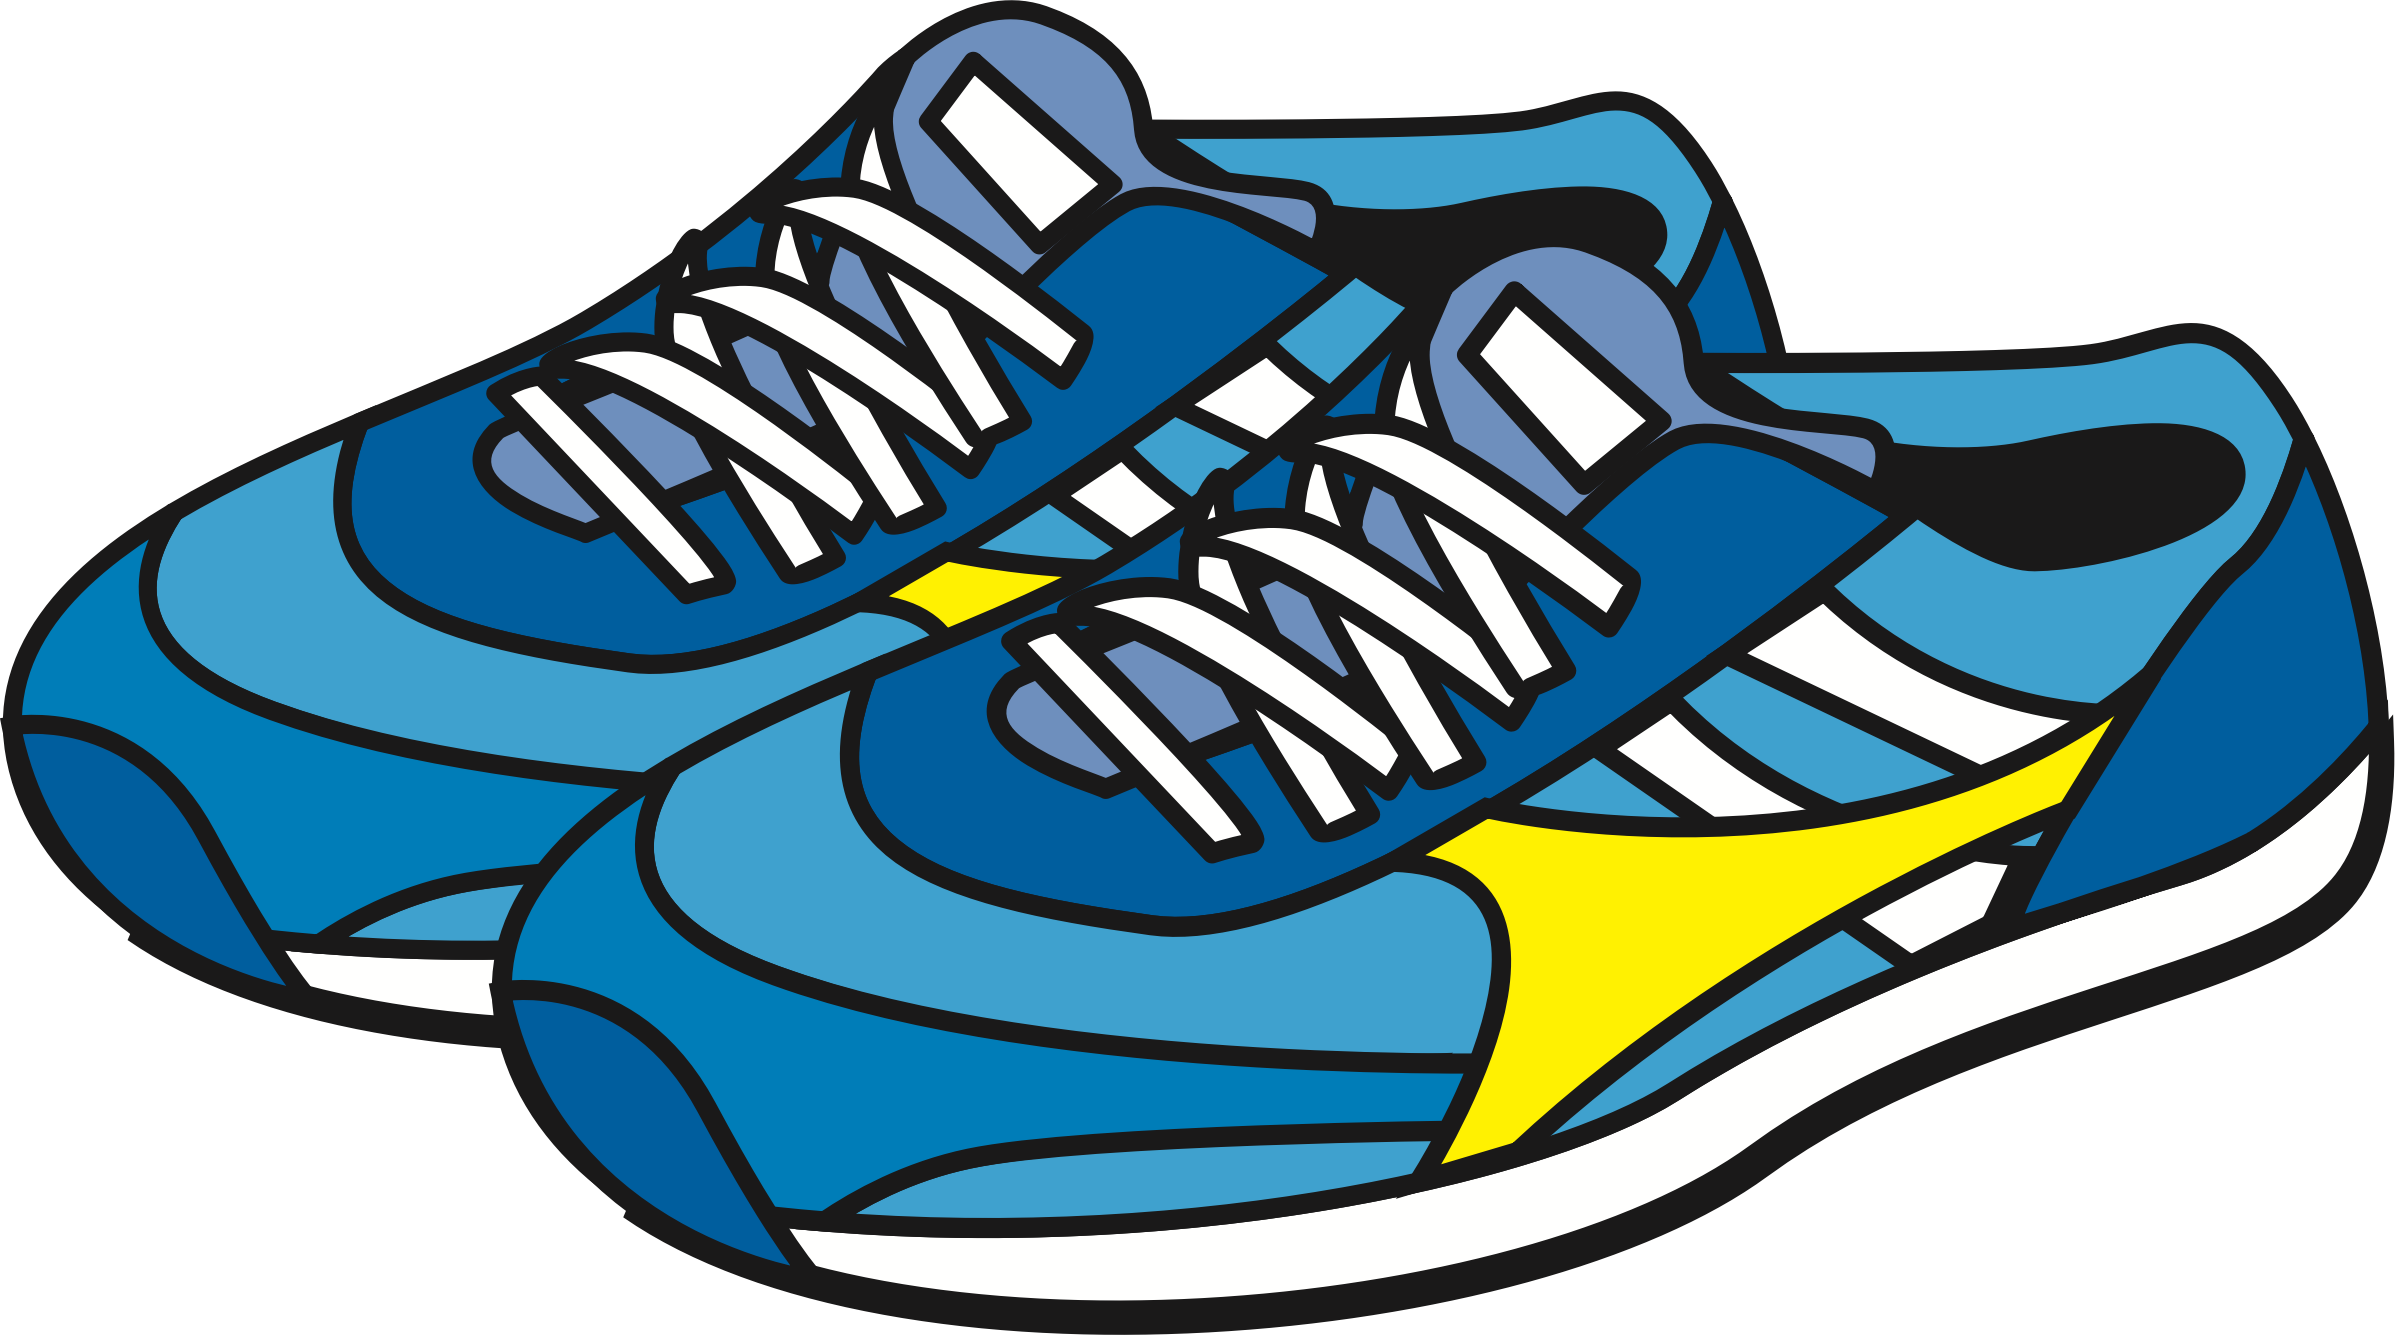 Clipart walking walking shoe, Clipart walking walking shoe ...